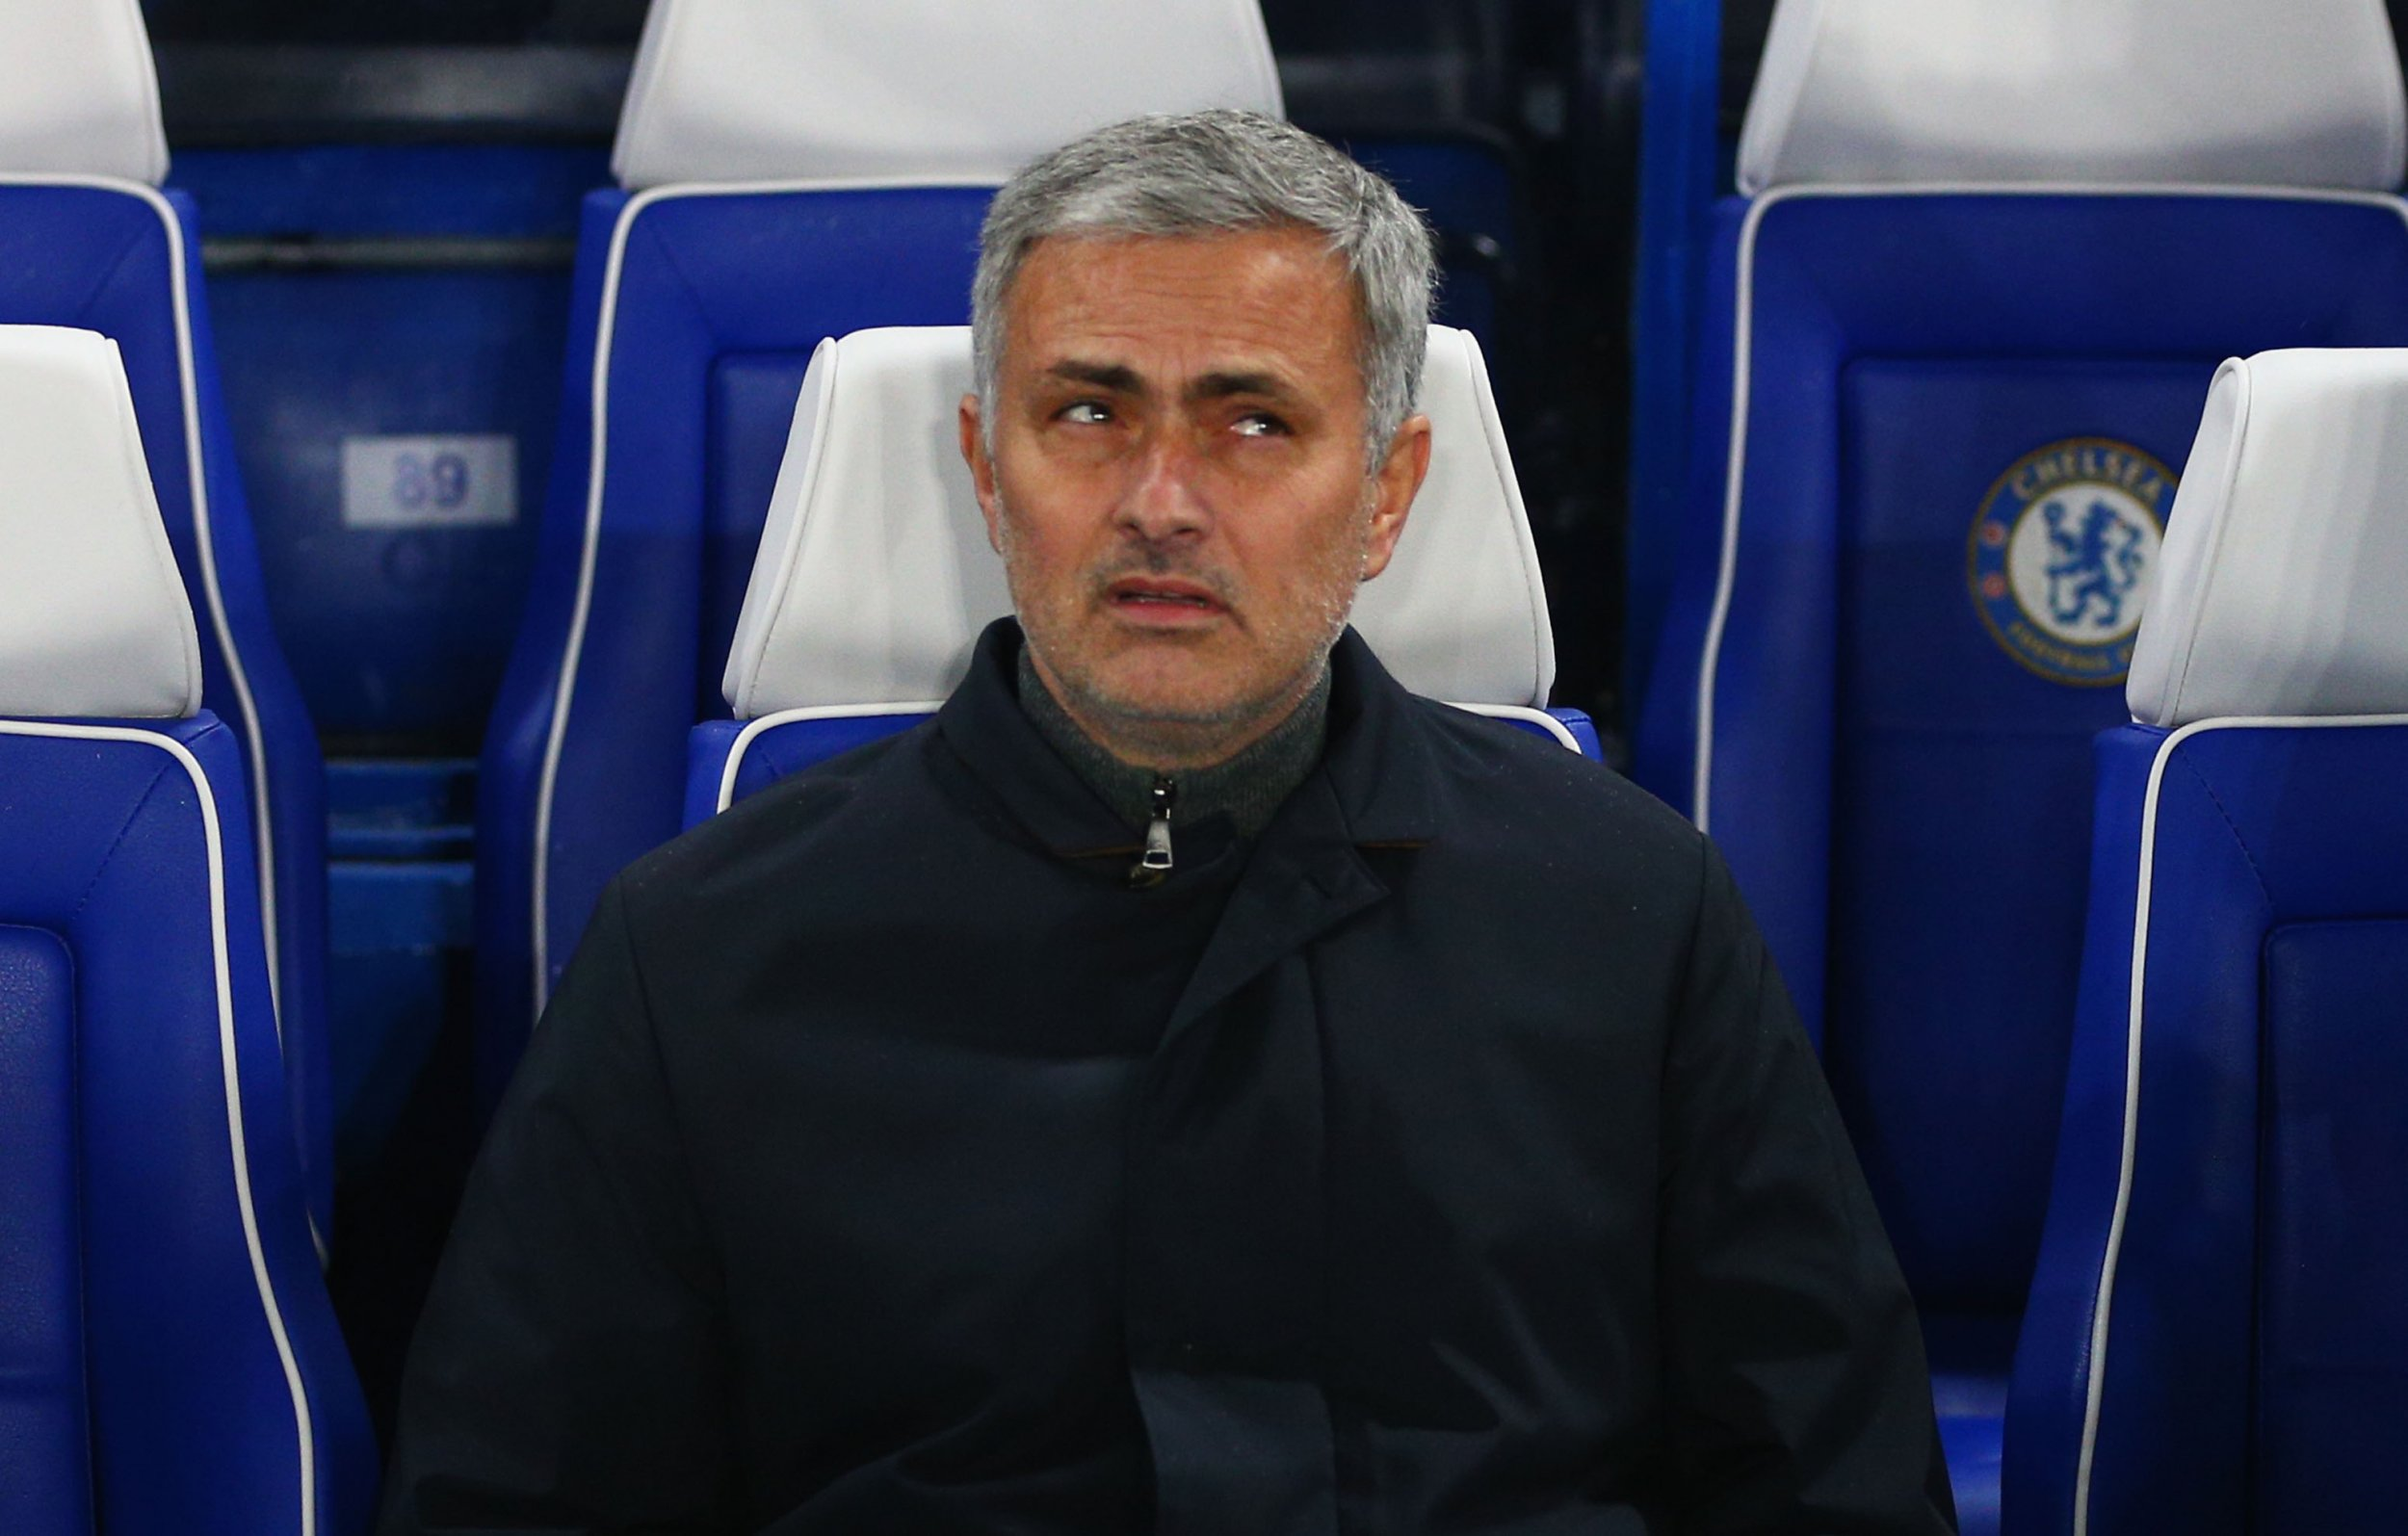 Jose Mourinho has been strongly linked with the Manchester United job.